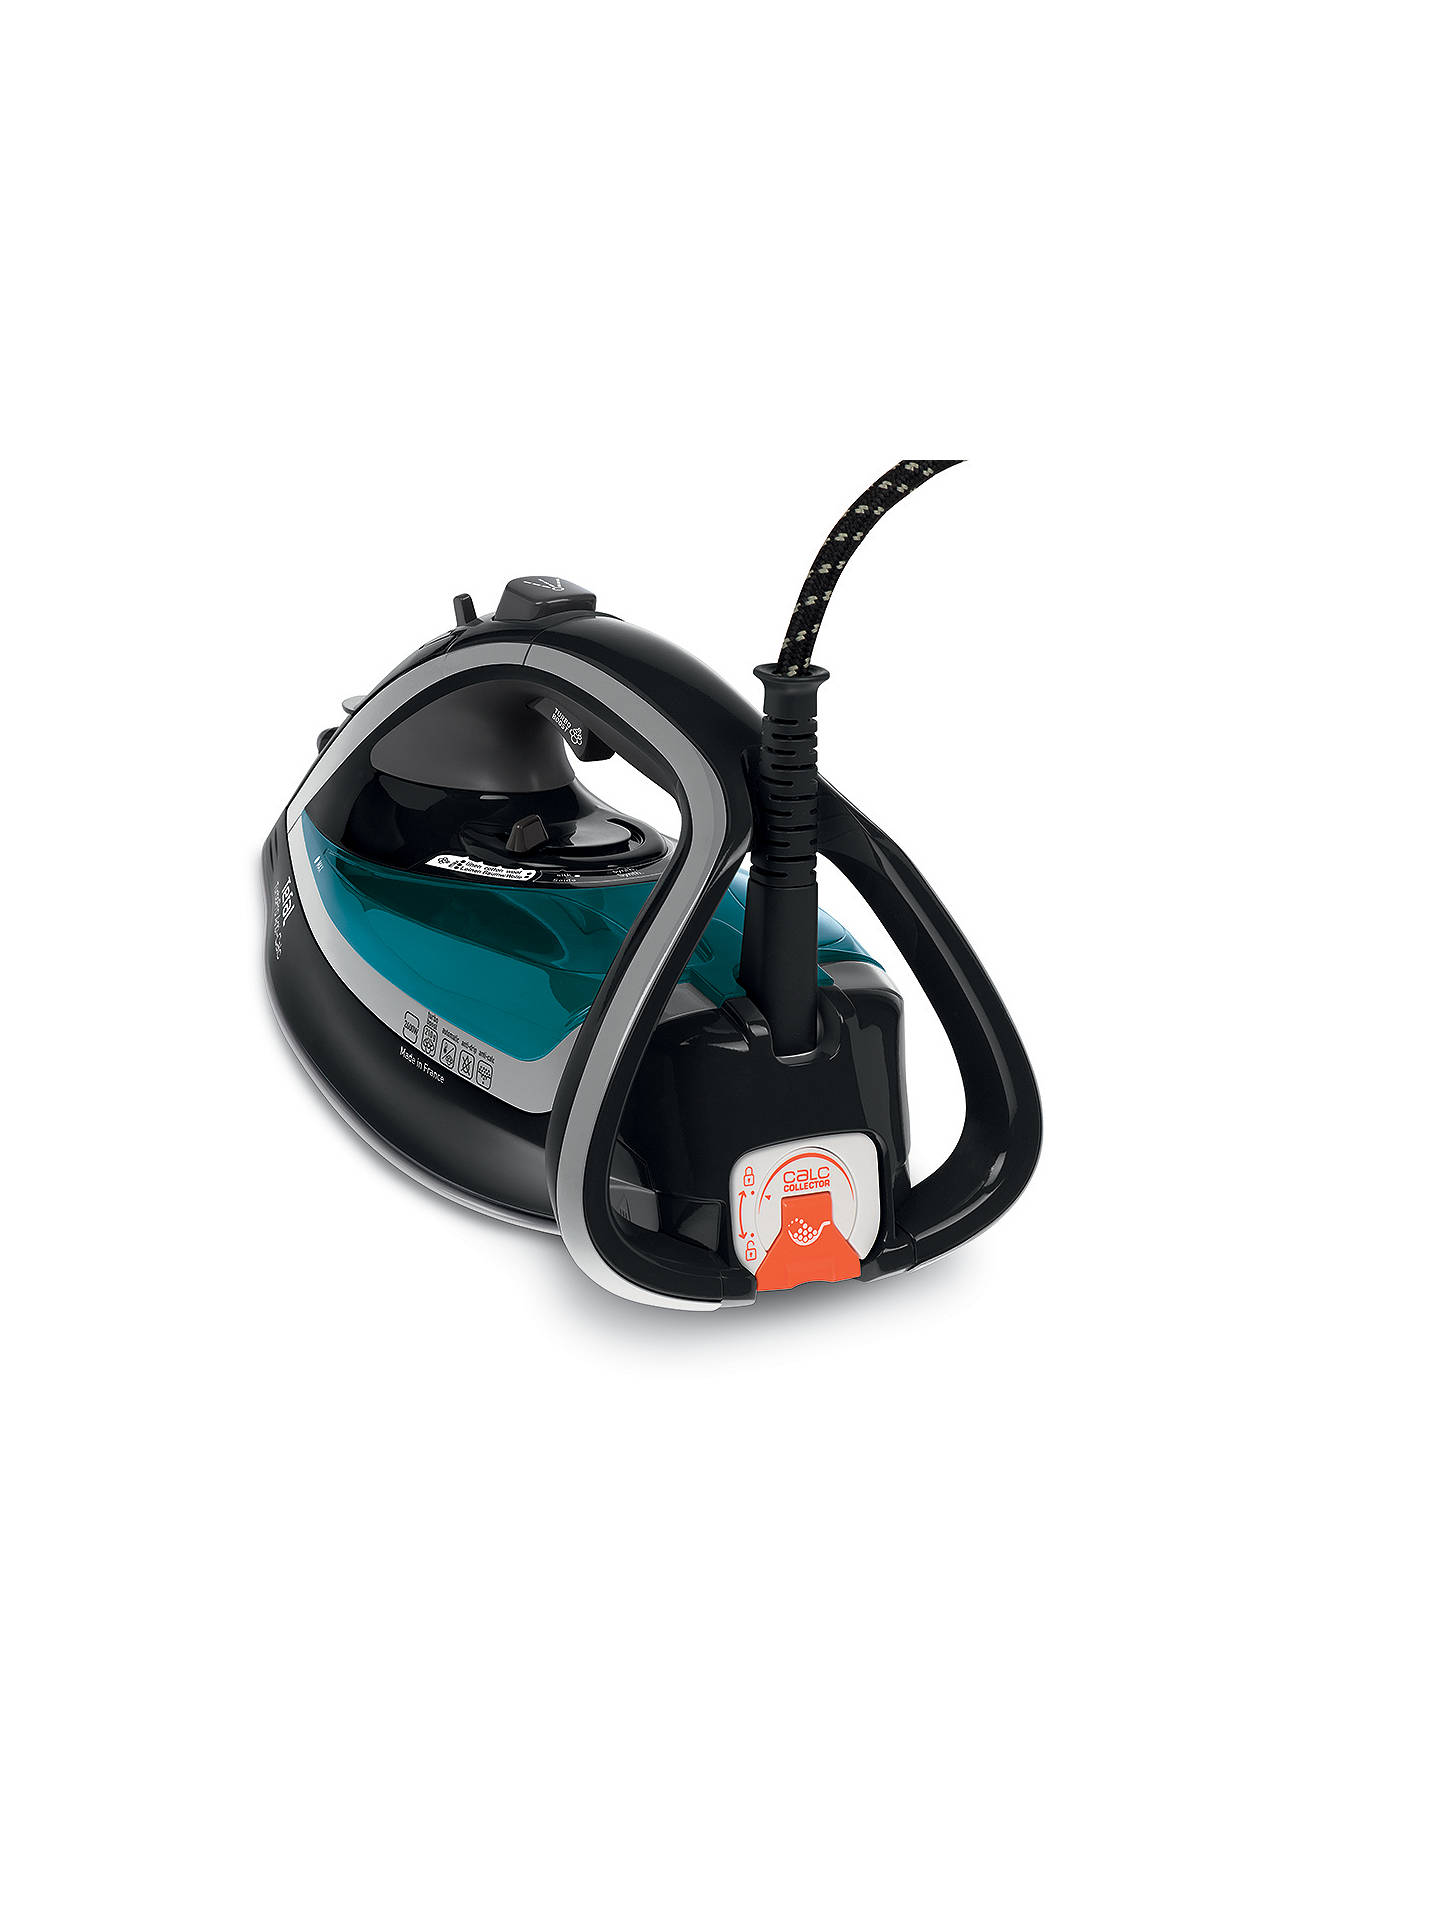 BuyTefal FV5640 Turbo Pro Steam Iron Online at johnlewis.com